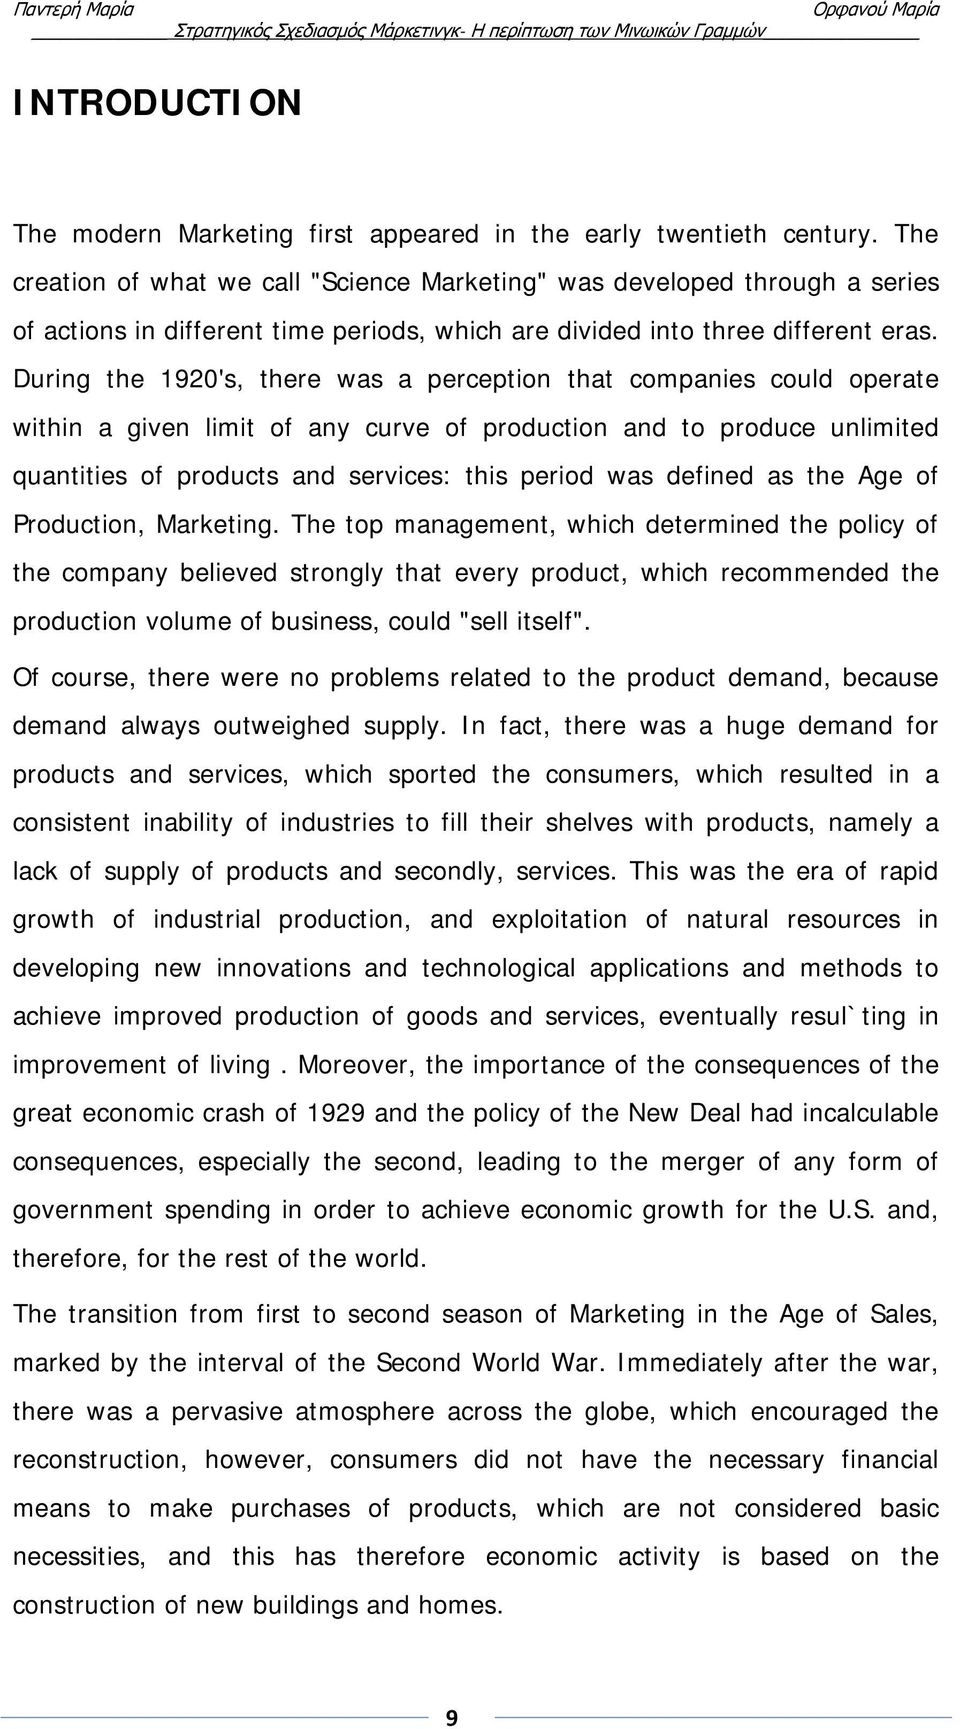 During the 1920's, there was a perception that companies could operate within a given limit of any curve of production and to produce unlimited quantities of products and services: this period was